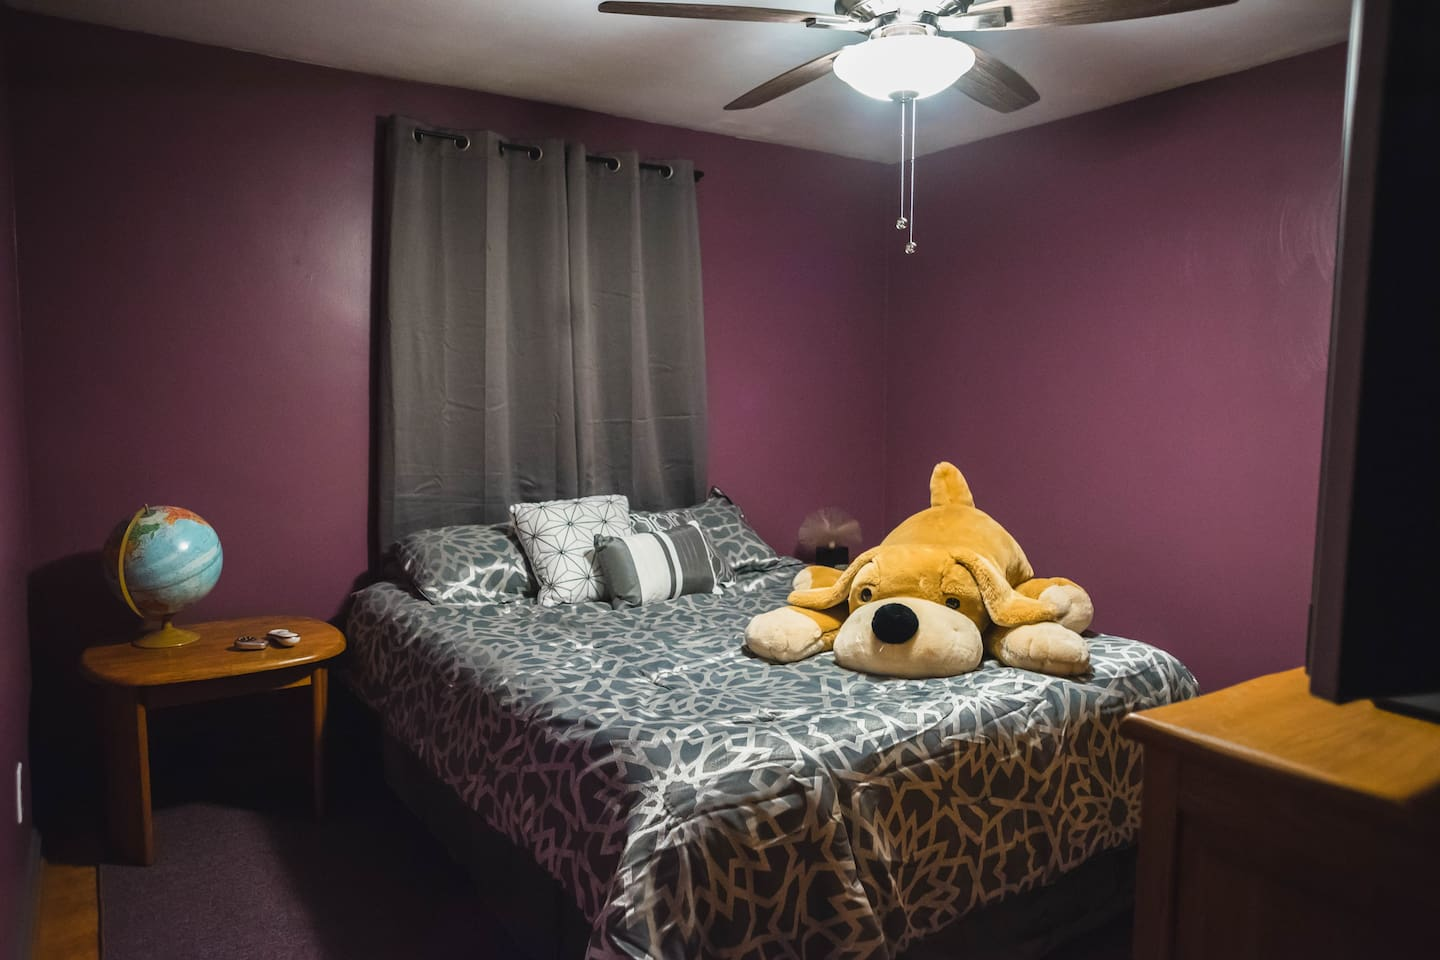 The Muahahahave Room that you will be staying in. It doesn't look like it but there is plenty of room here for your bags and an empty dresser and closet at your disposal if you are planning on staying for a while.